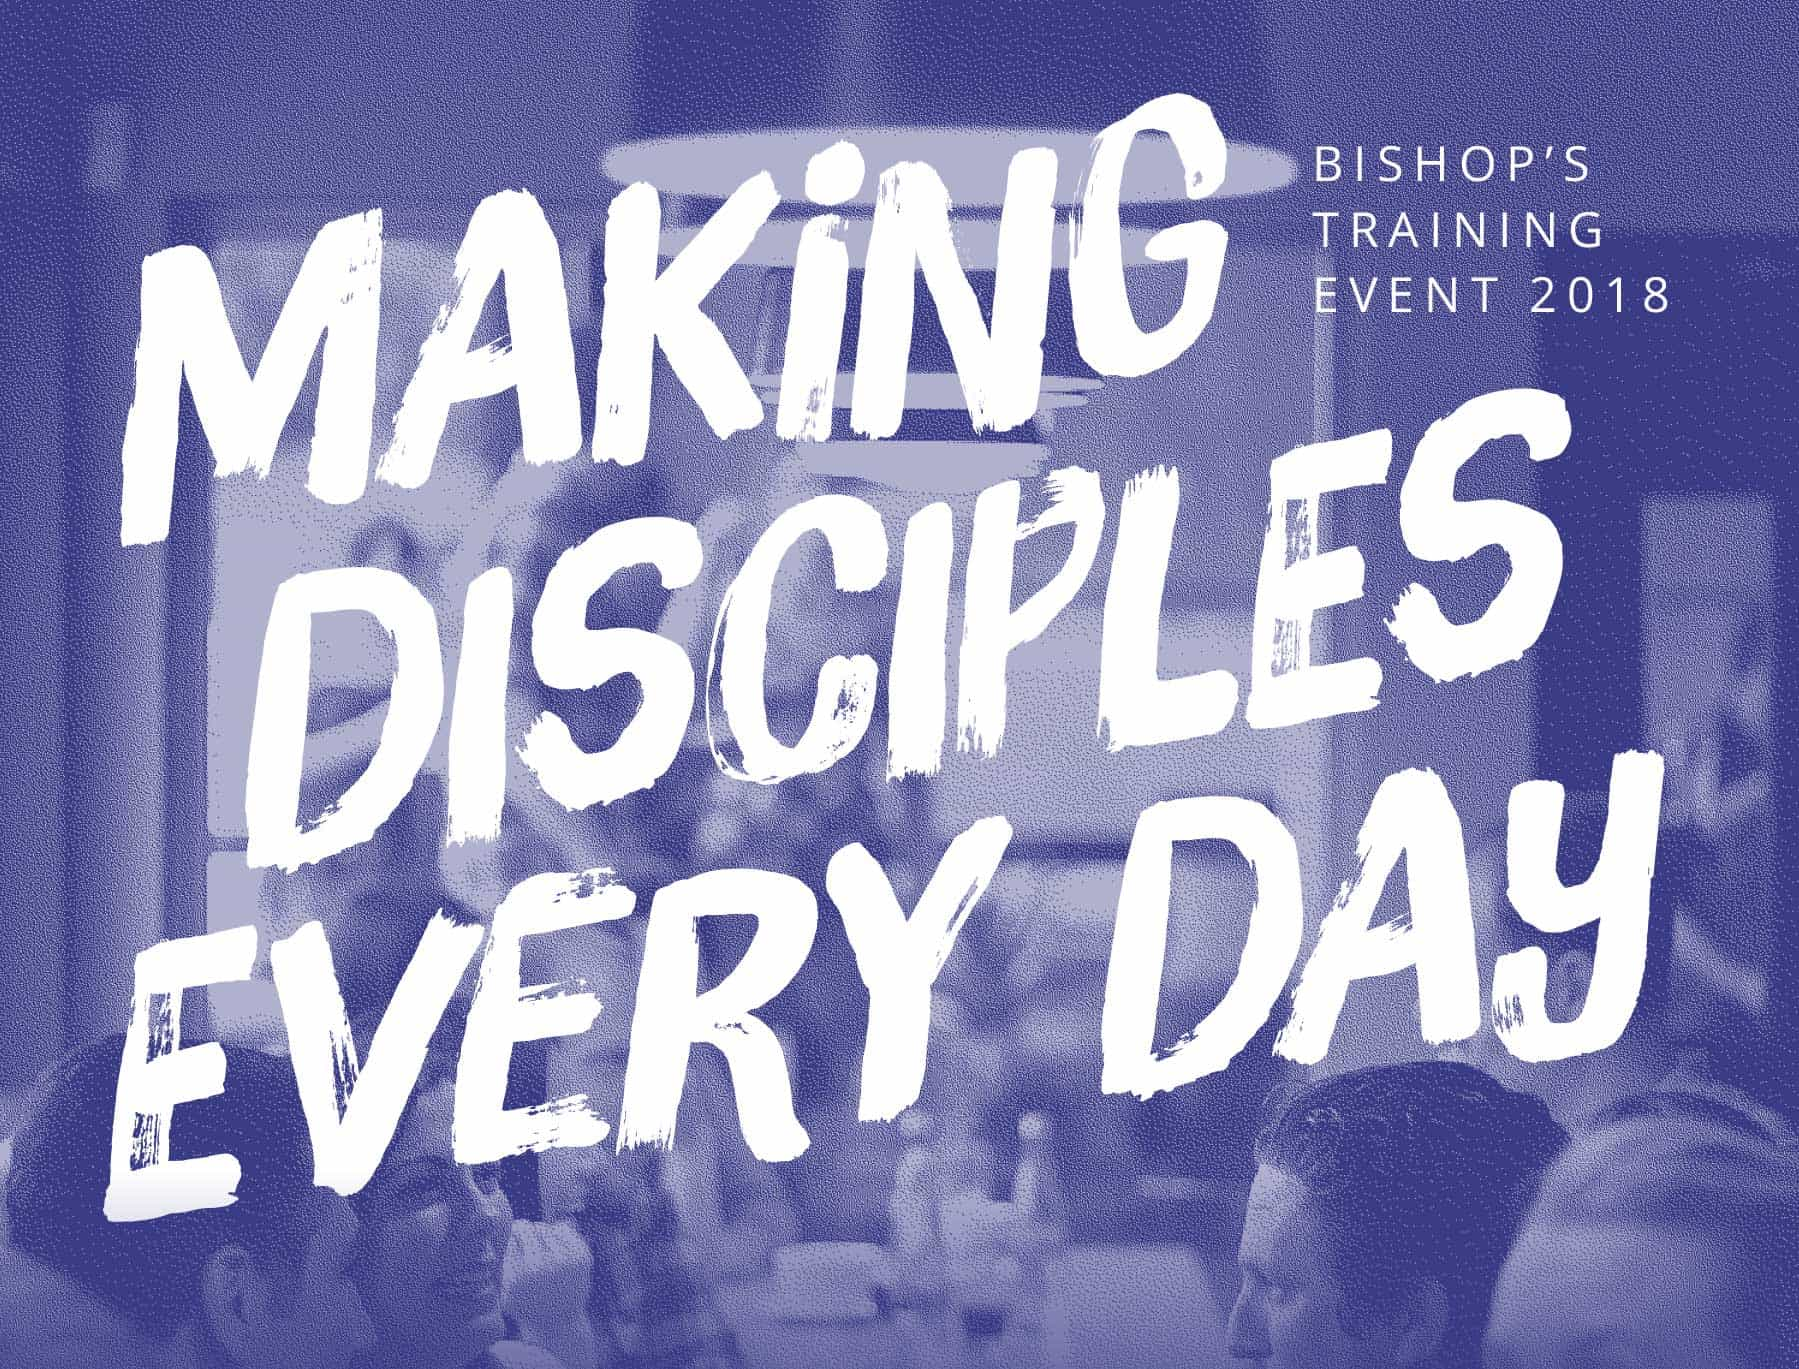 Bishops Training Event